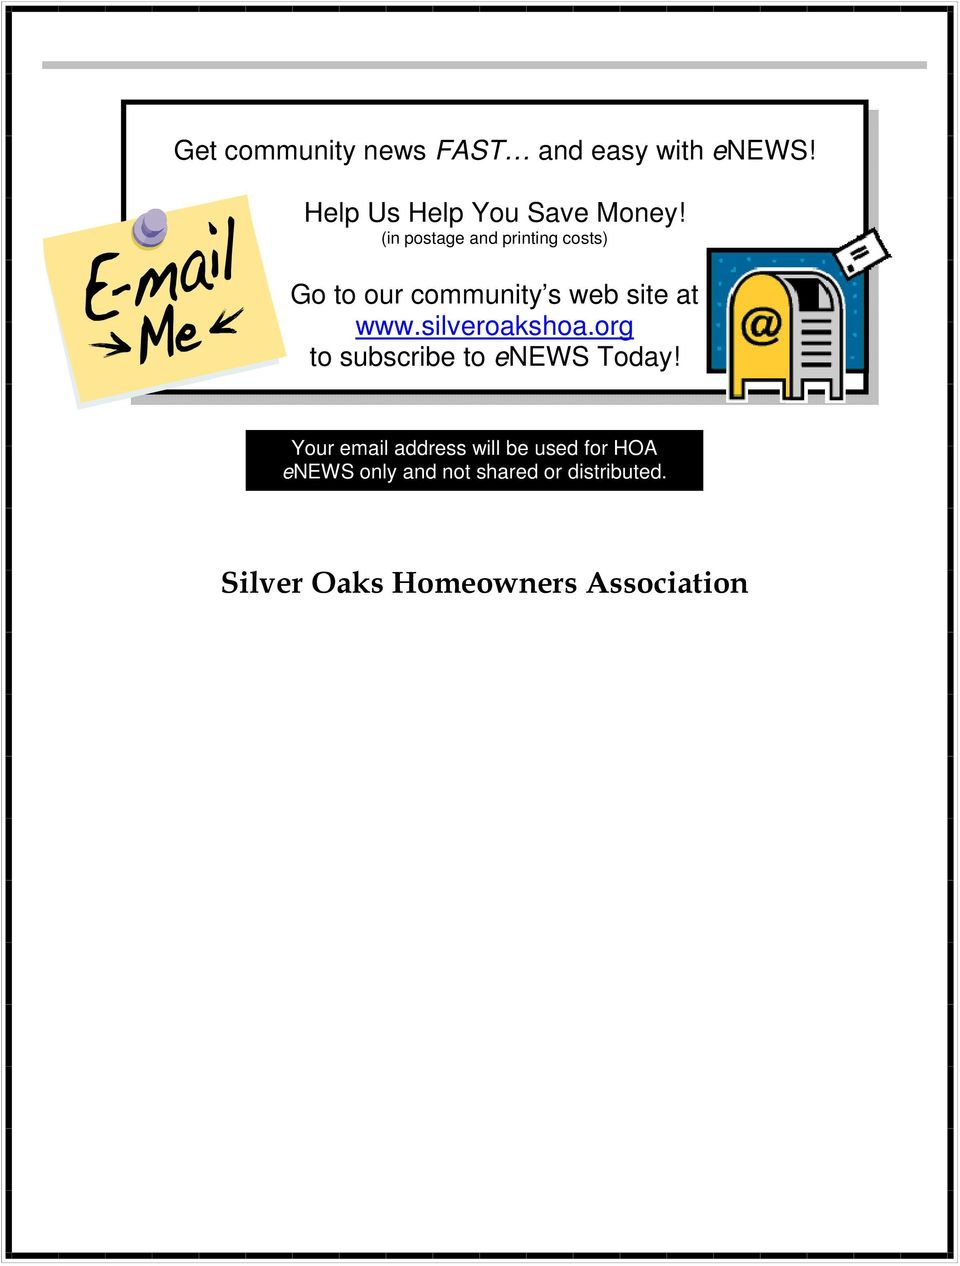 silveroakshoa.org to subscribe to enews Today!